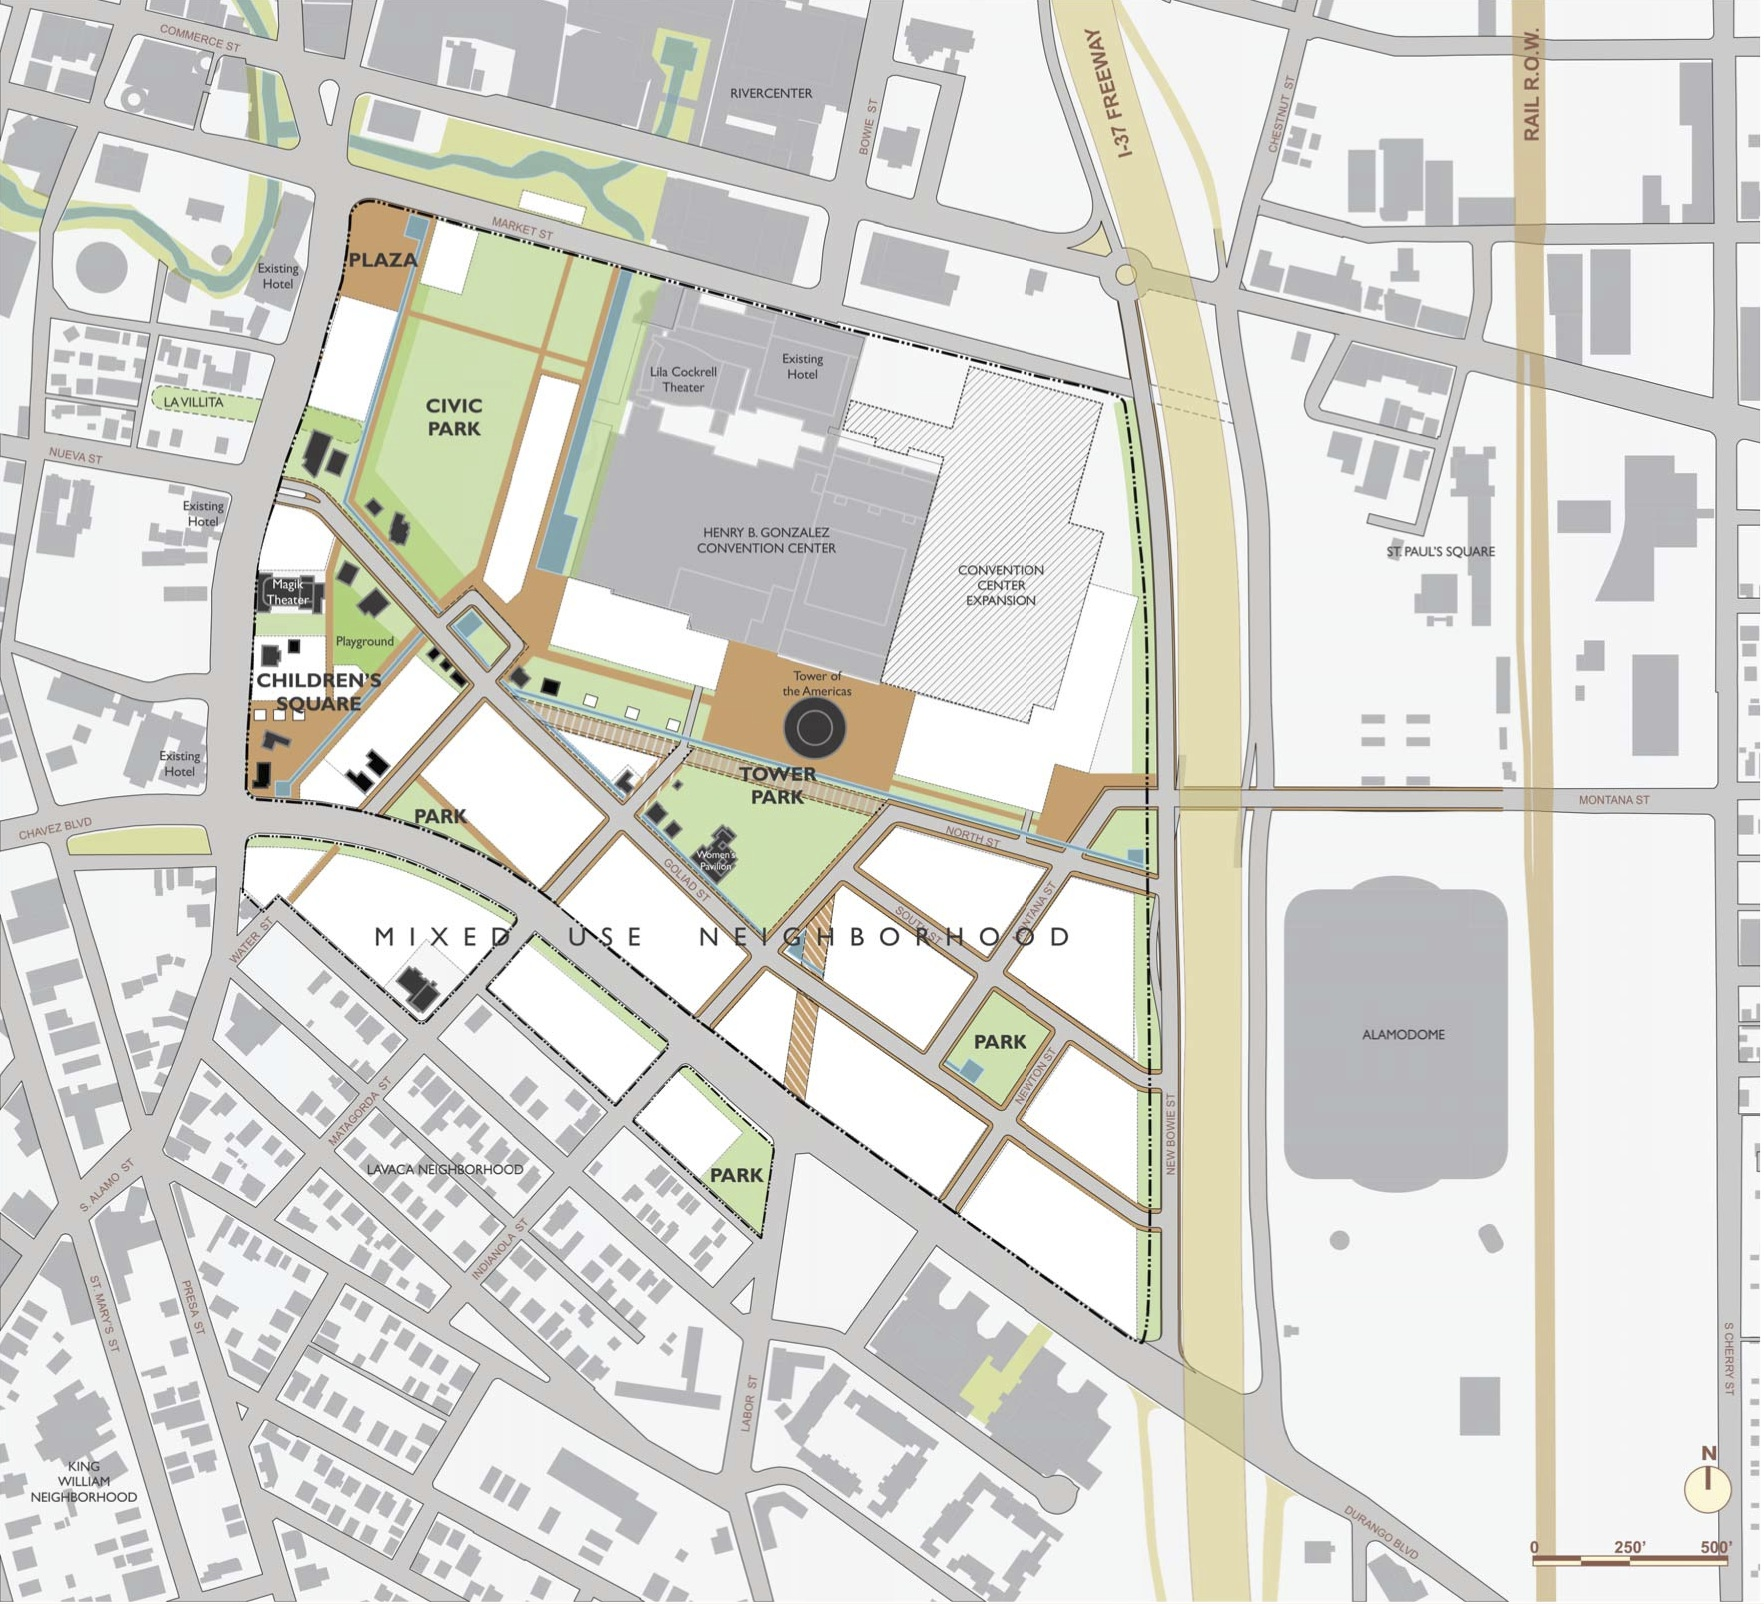 Hemisfair Master Plan conceptualization. Click image to download the master plan.